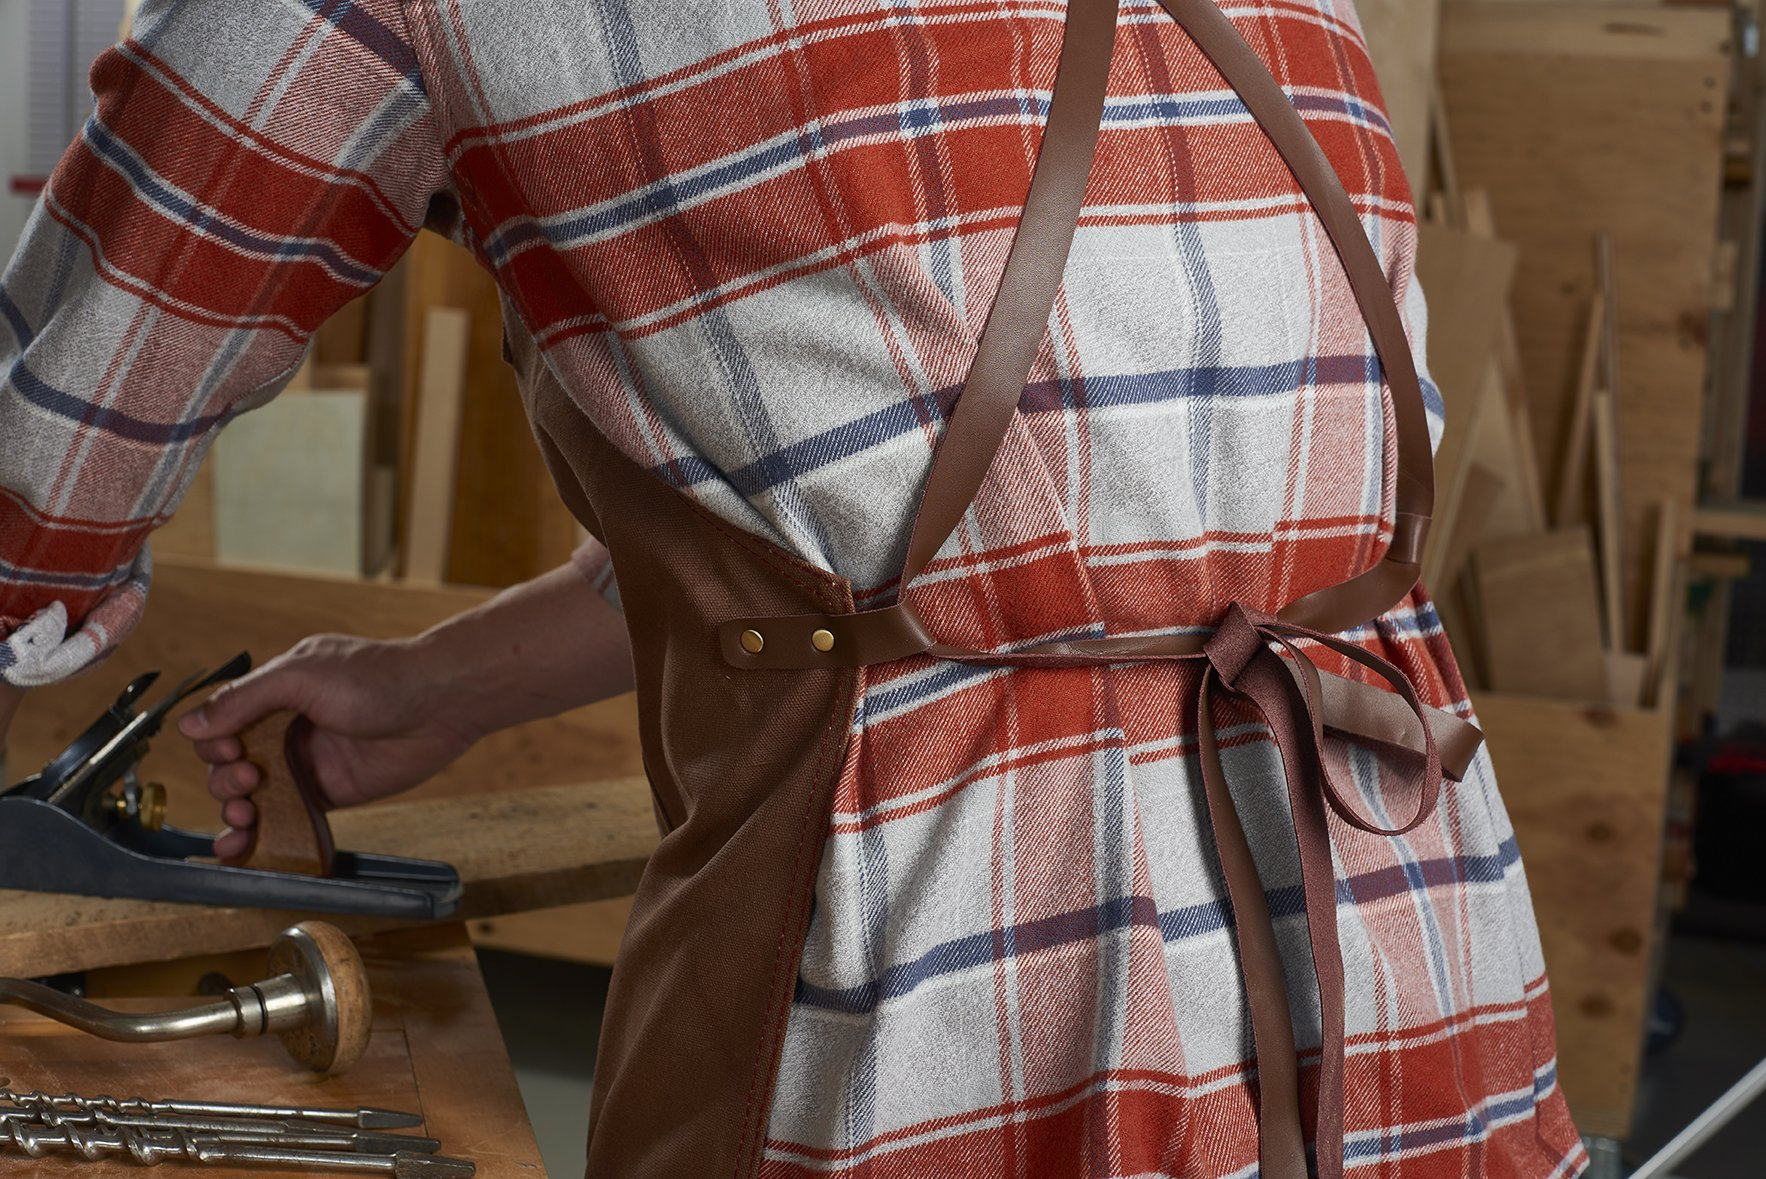 Craftsmans Guild Waxed Canvas Heavy Duty Apron Leather Straps Utility Tool BBQ Cooking Chefs Cooks Shop Woodworking for Men & Women by Craftsmans Guild (Image #4)